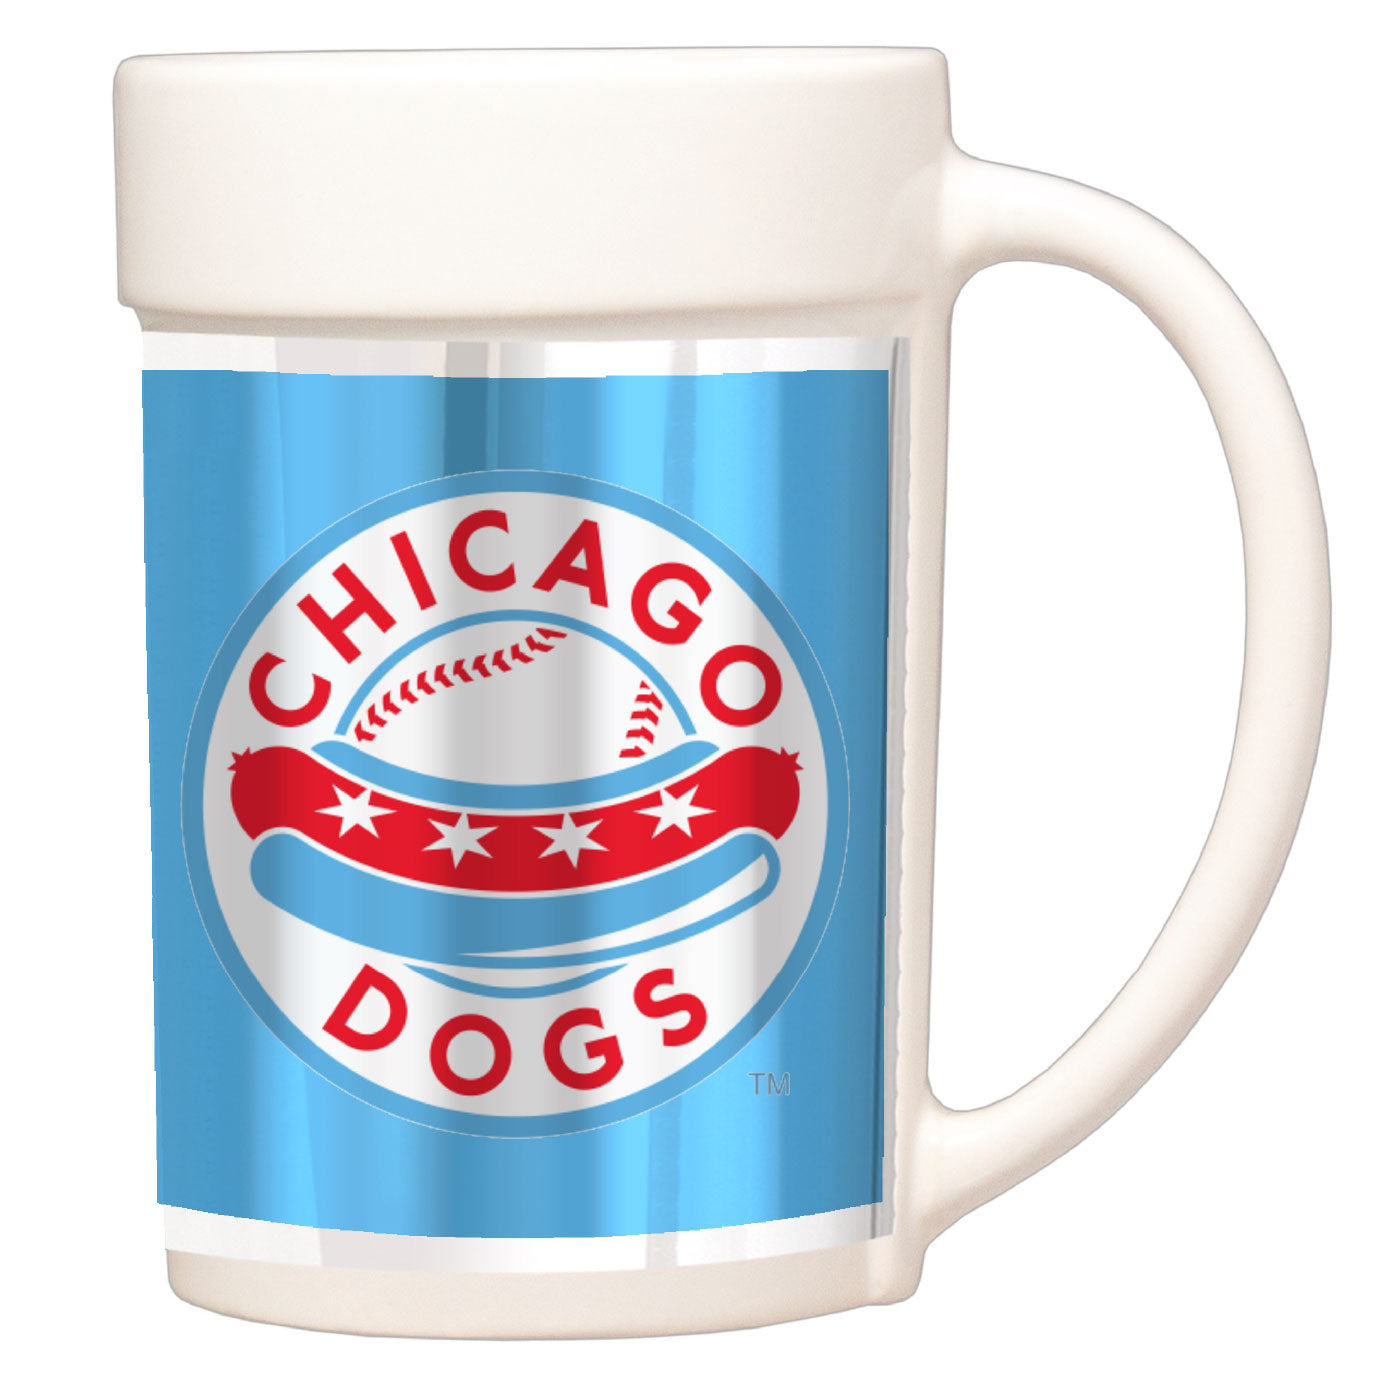 Chicago Dogs Ceramic Coffee Mug - White - Chicago Dogs Team Store